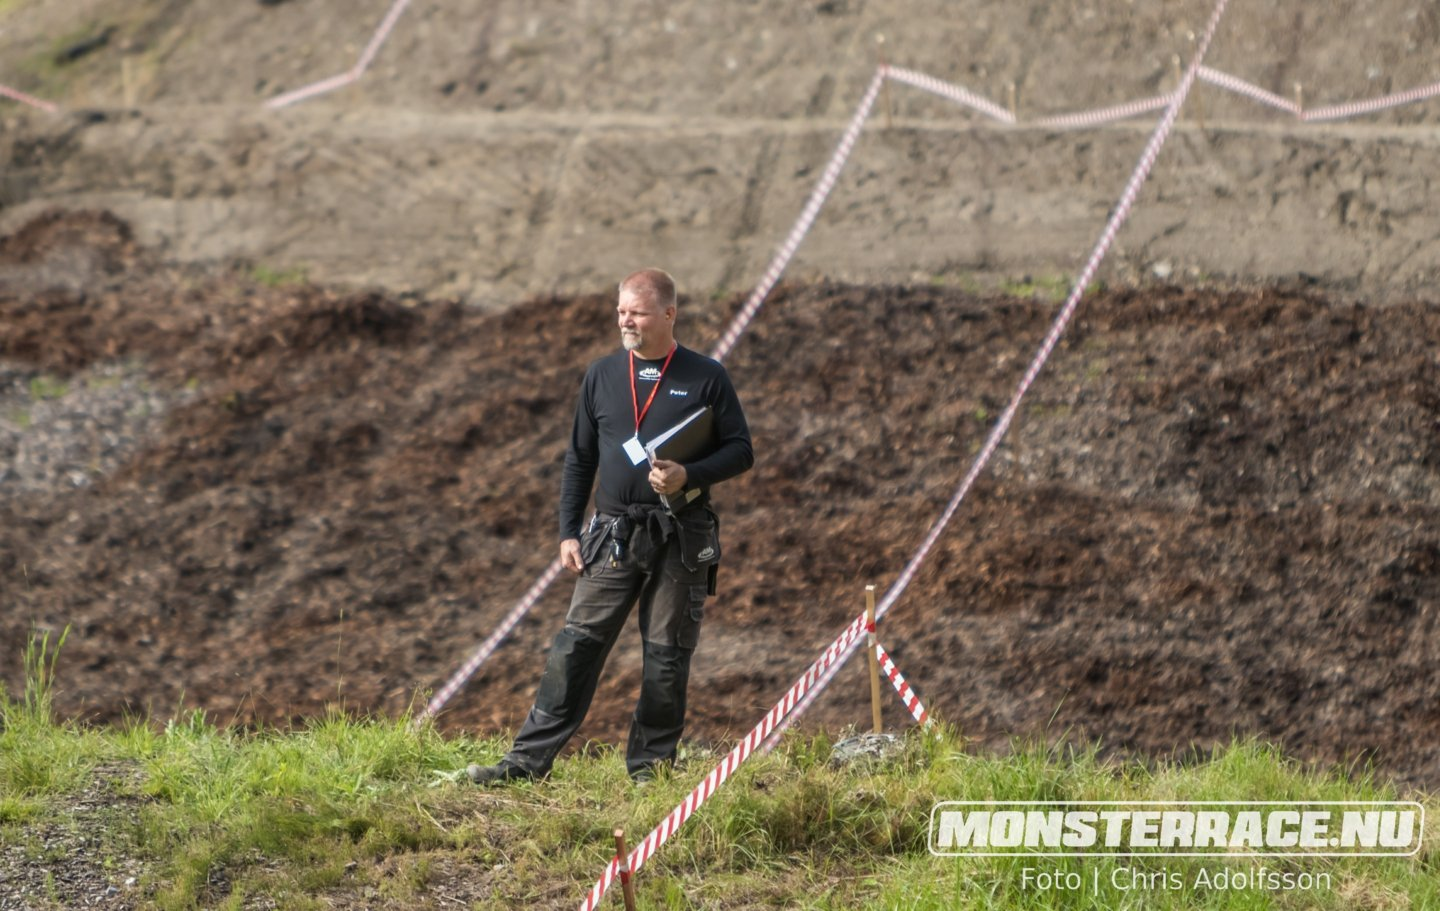 Monsterrace Ed dag 1 (47)